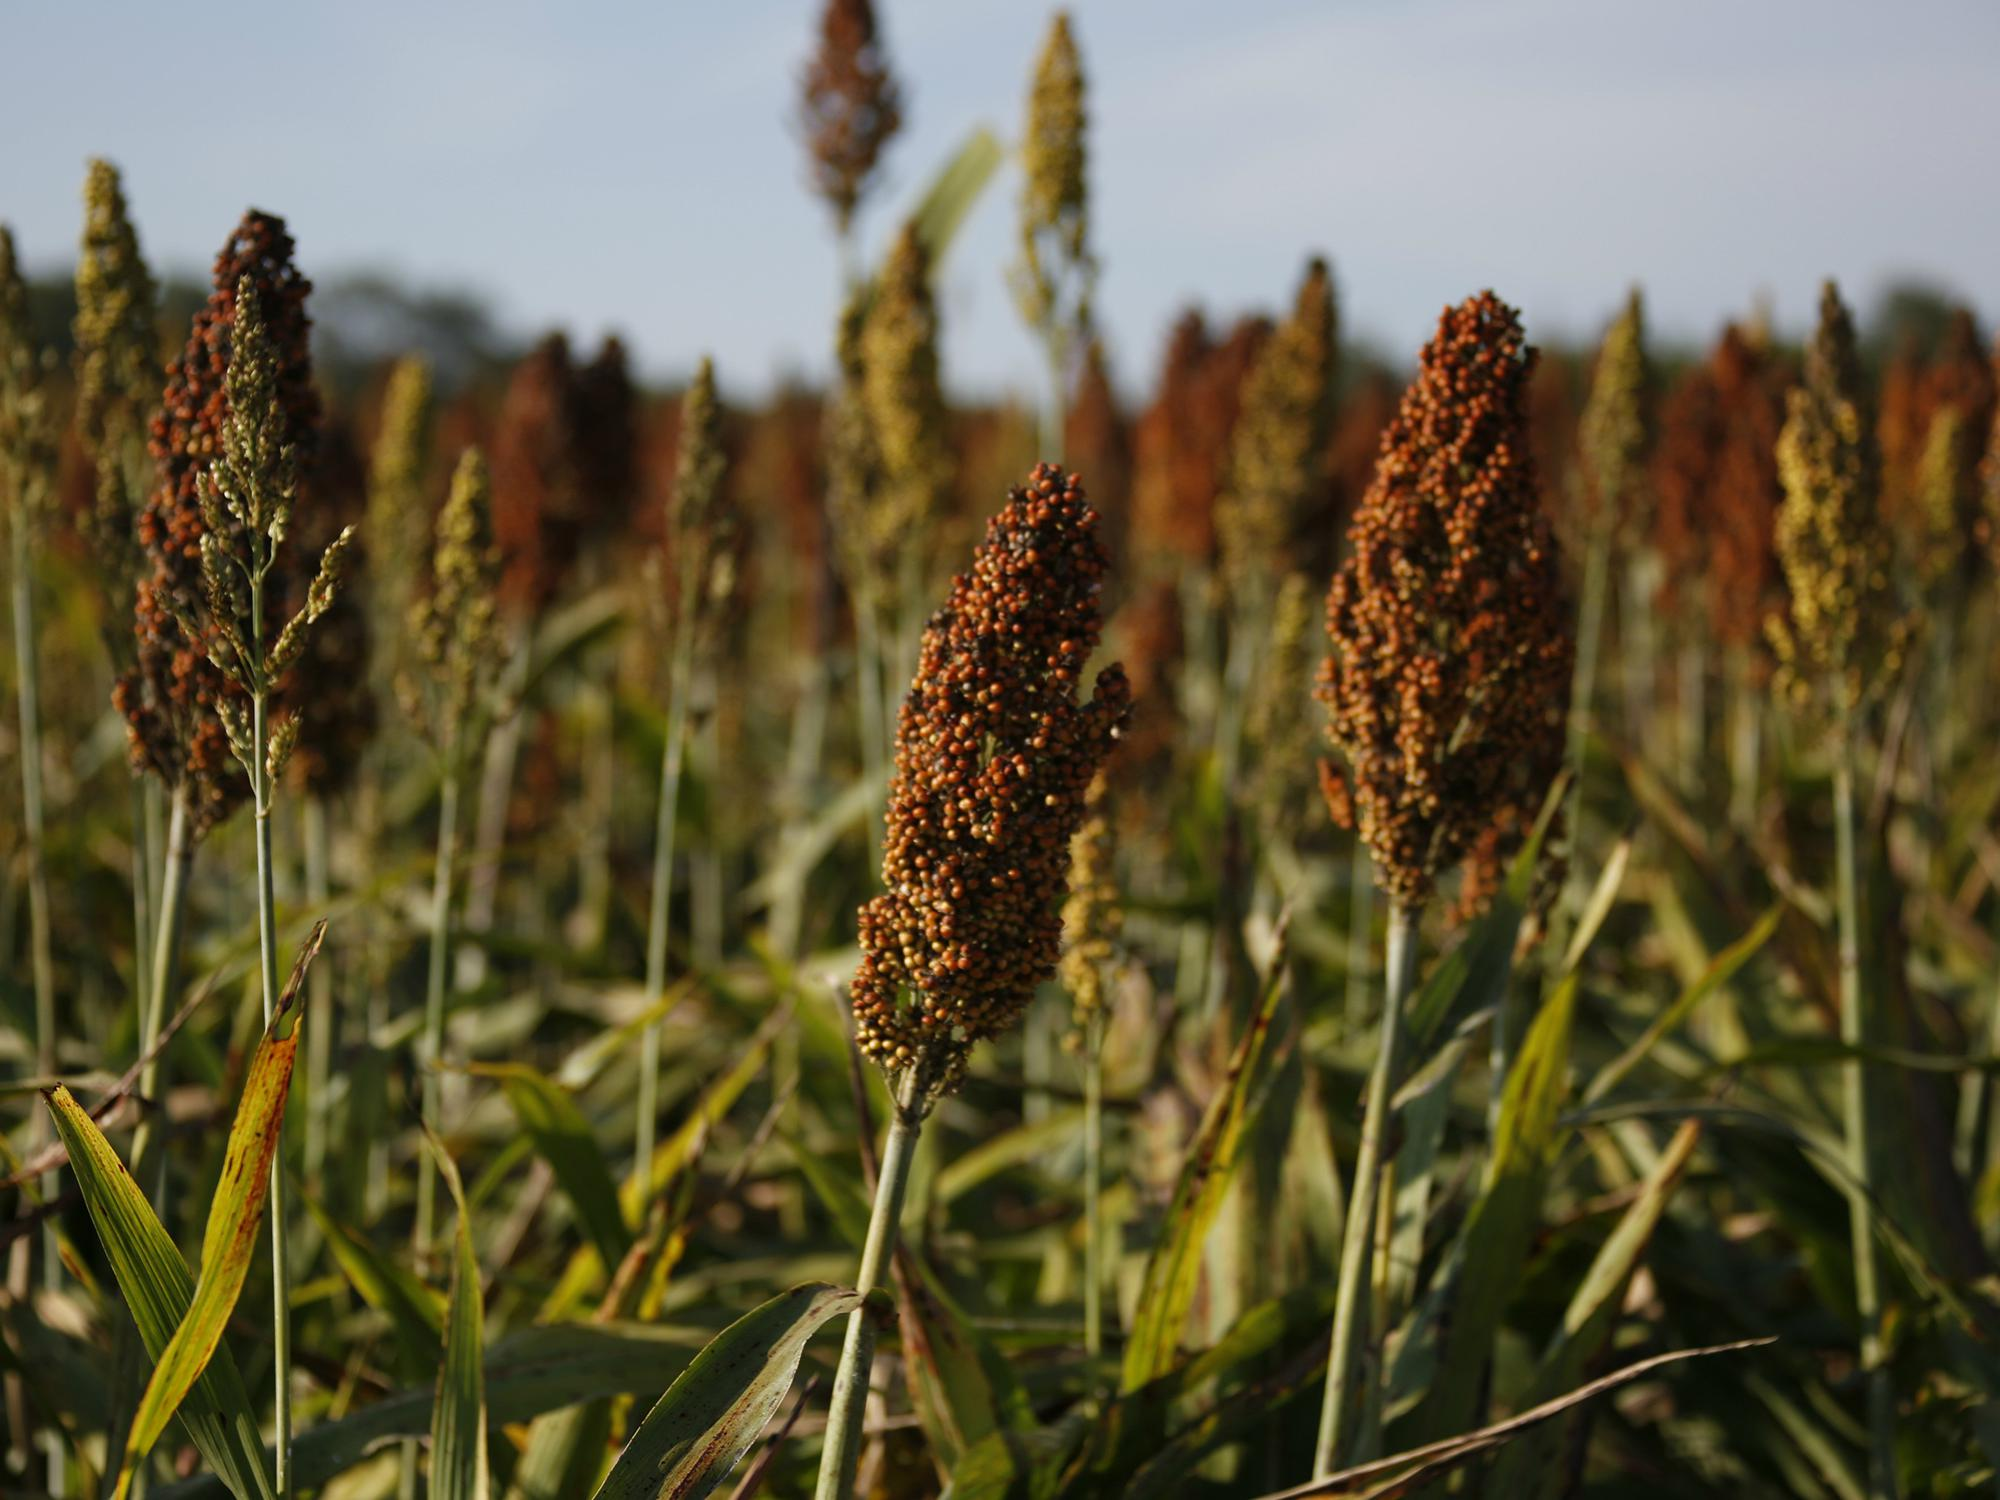 Close up of a head of grain sorghum full of tiny brown seeds, along with other plant heads in the field around it.